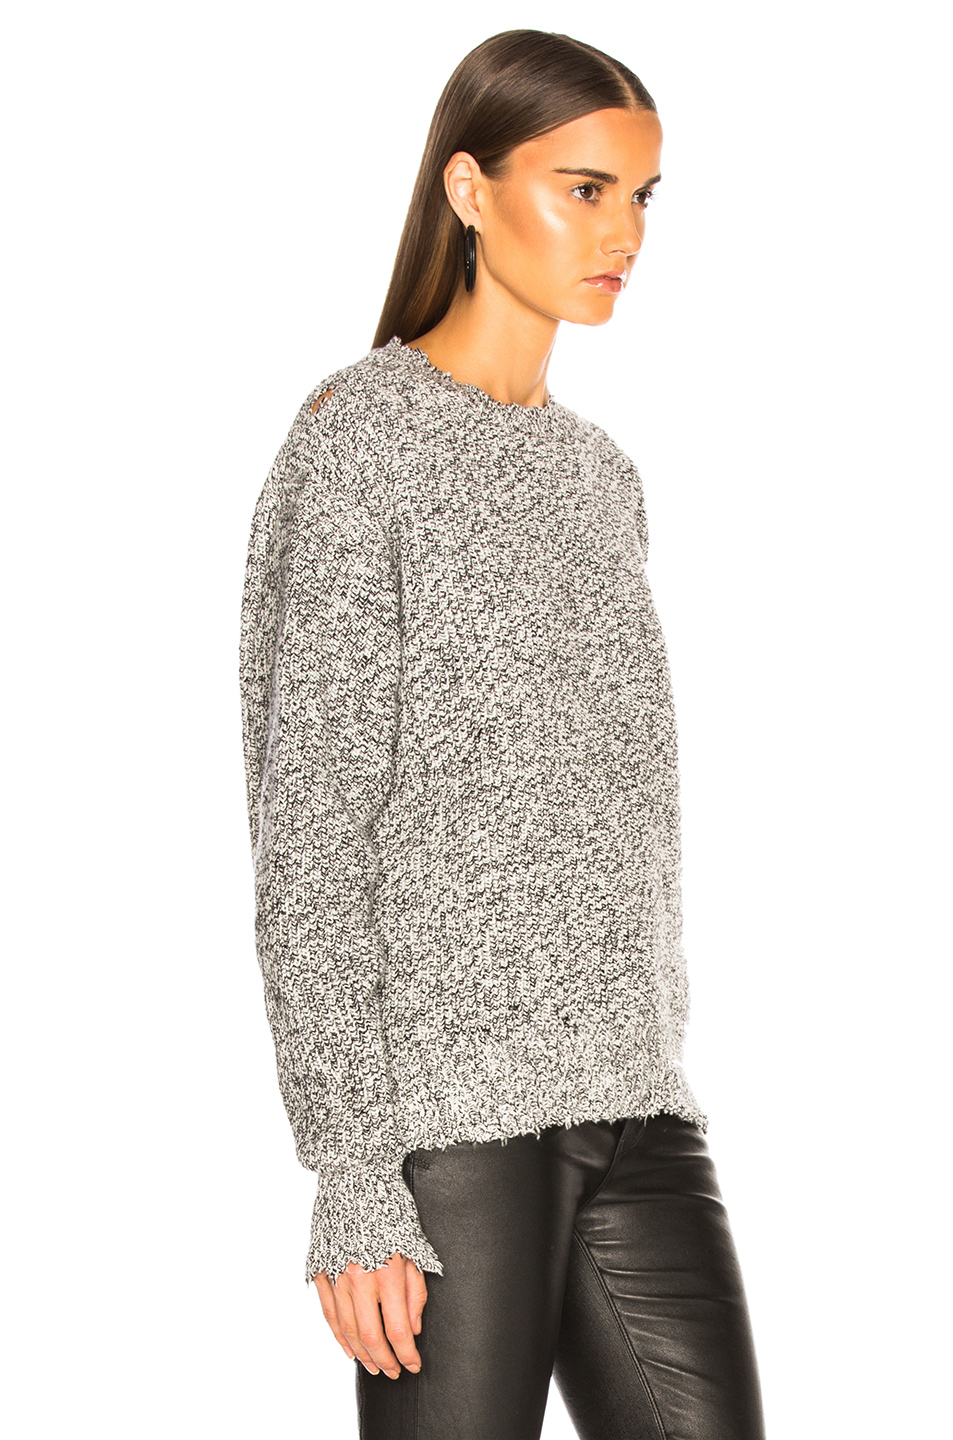 3feb421a153a1 Buy Original Helmut Lang Distressed Relaxed Long Sleeve Crew at ...